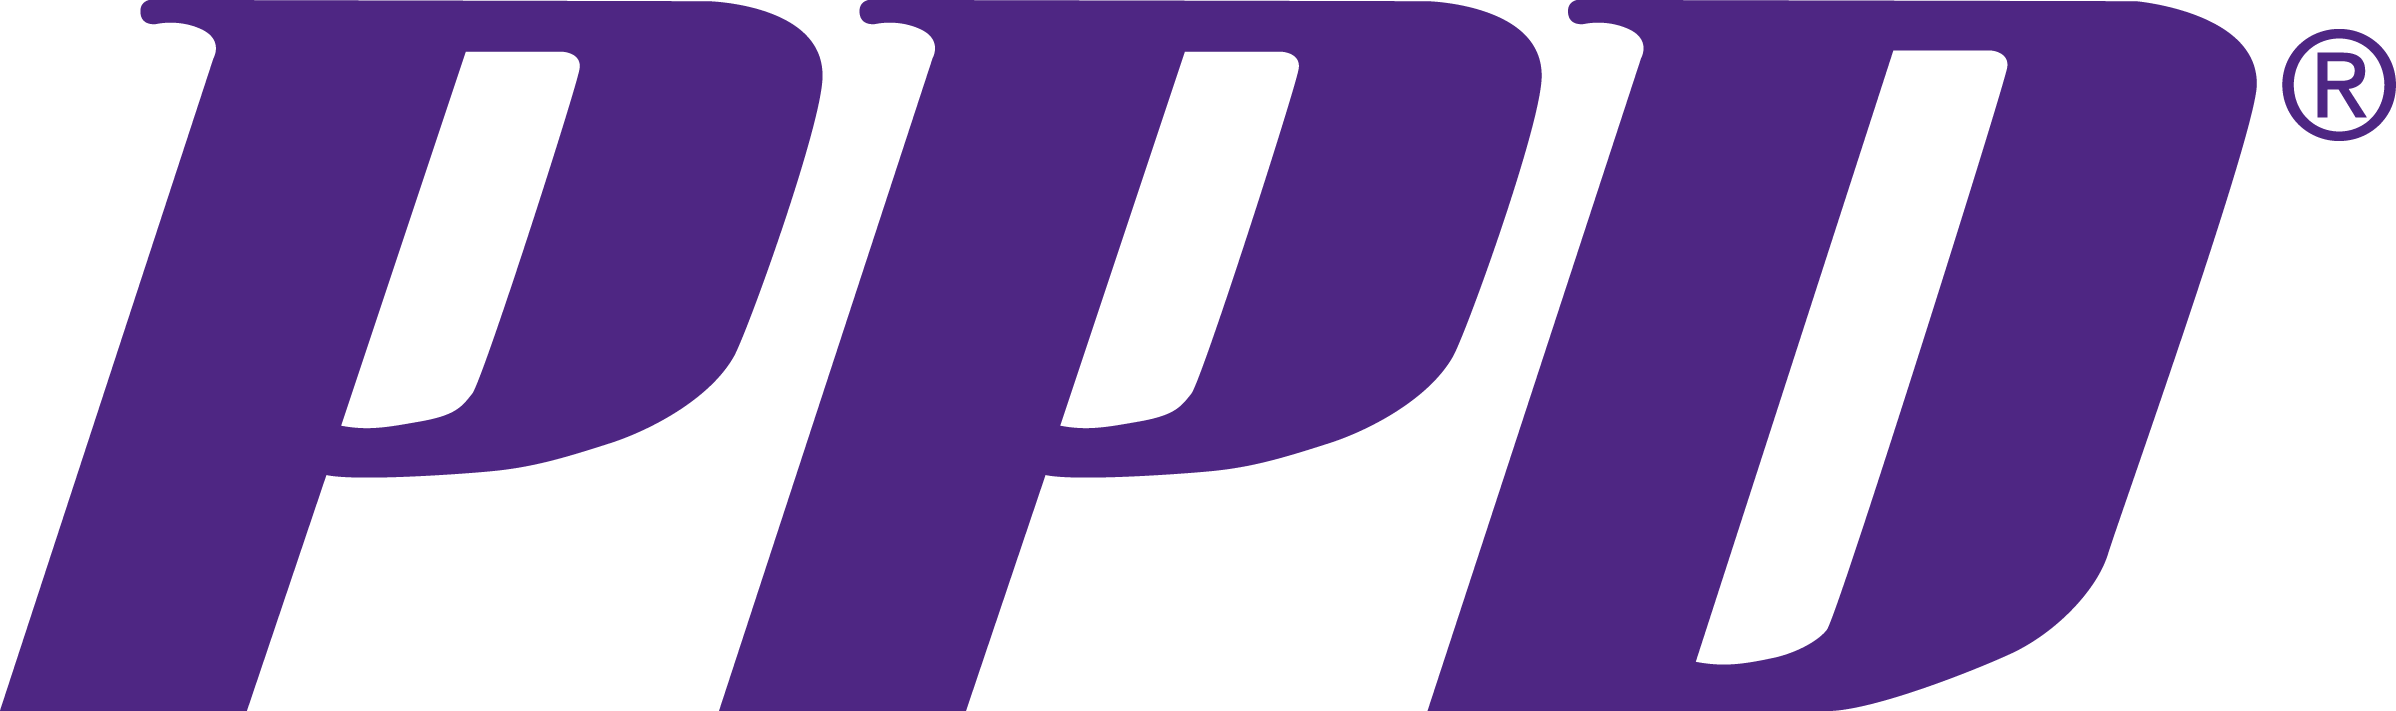 PPD logo.png